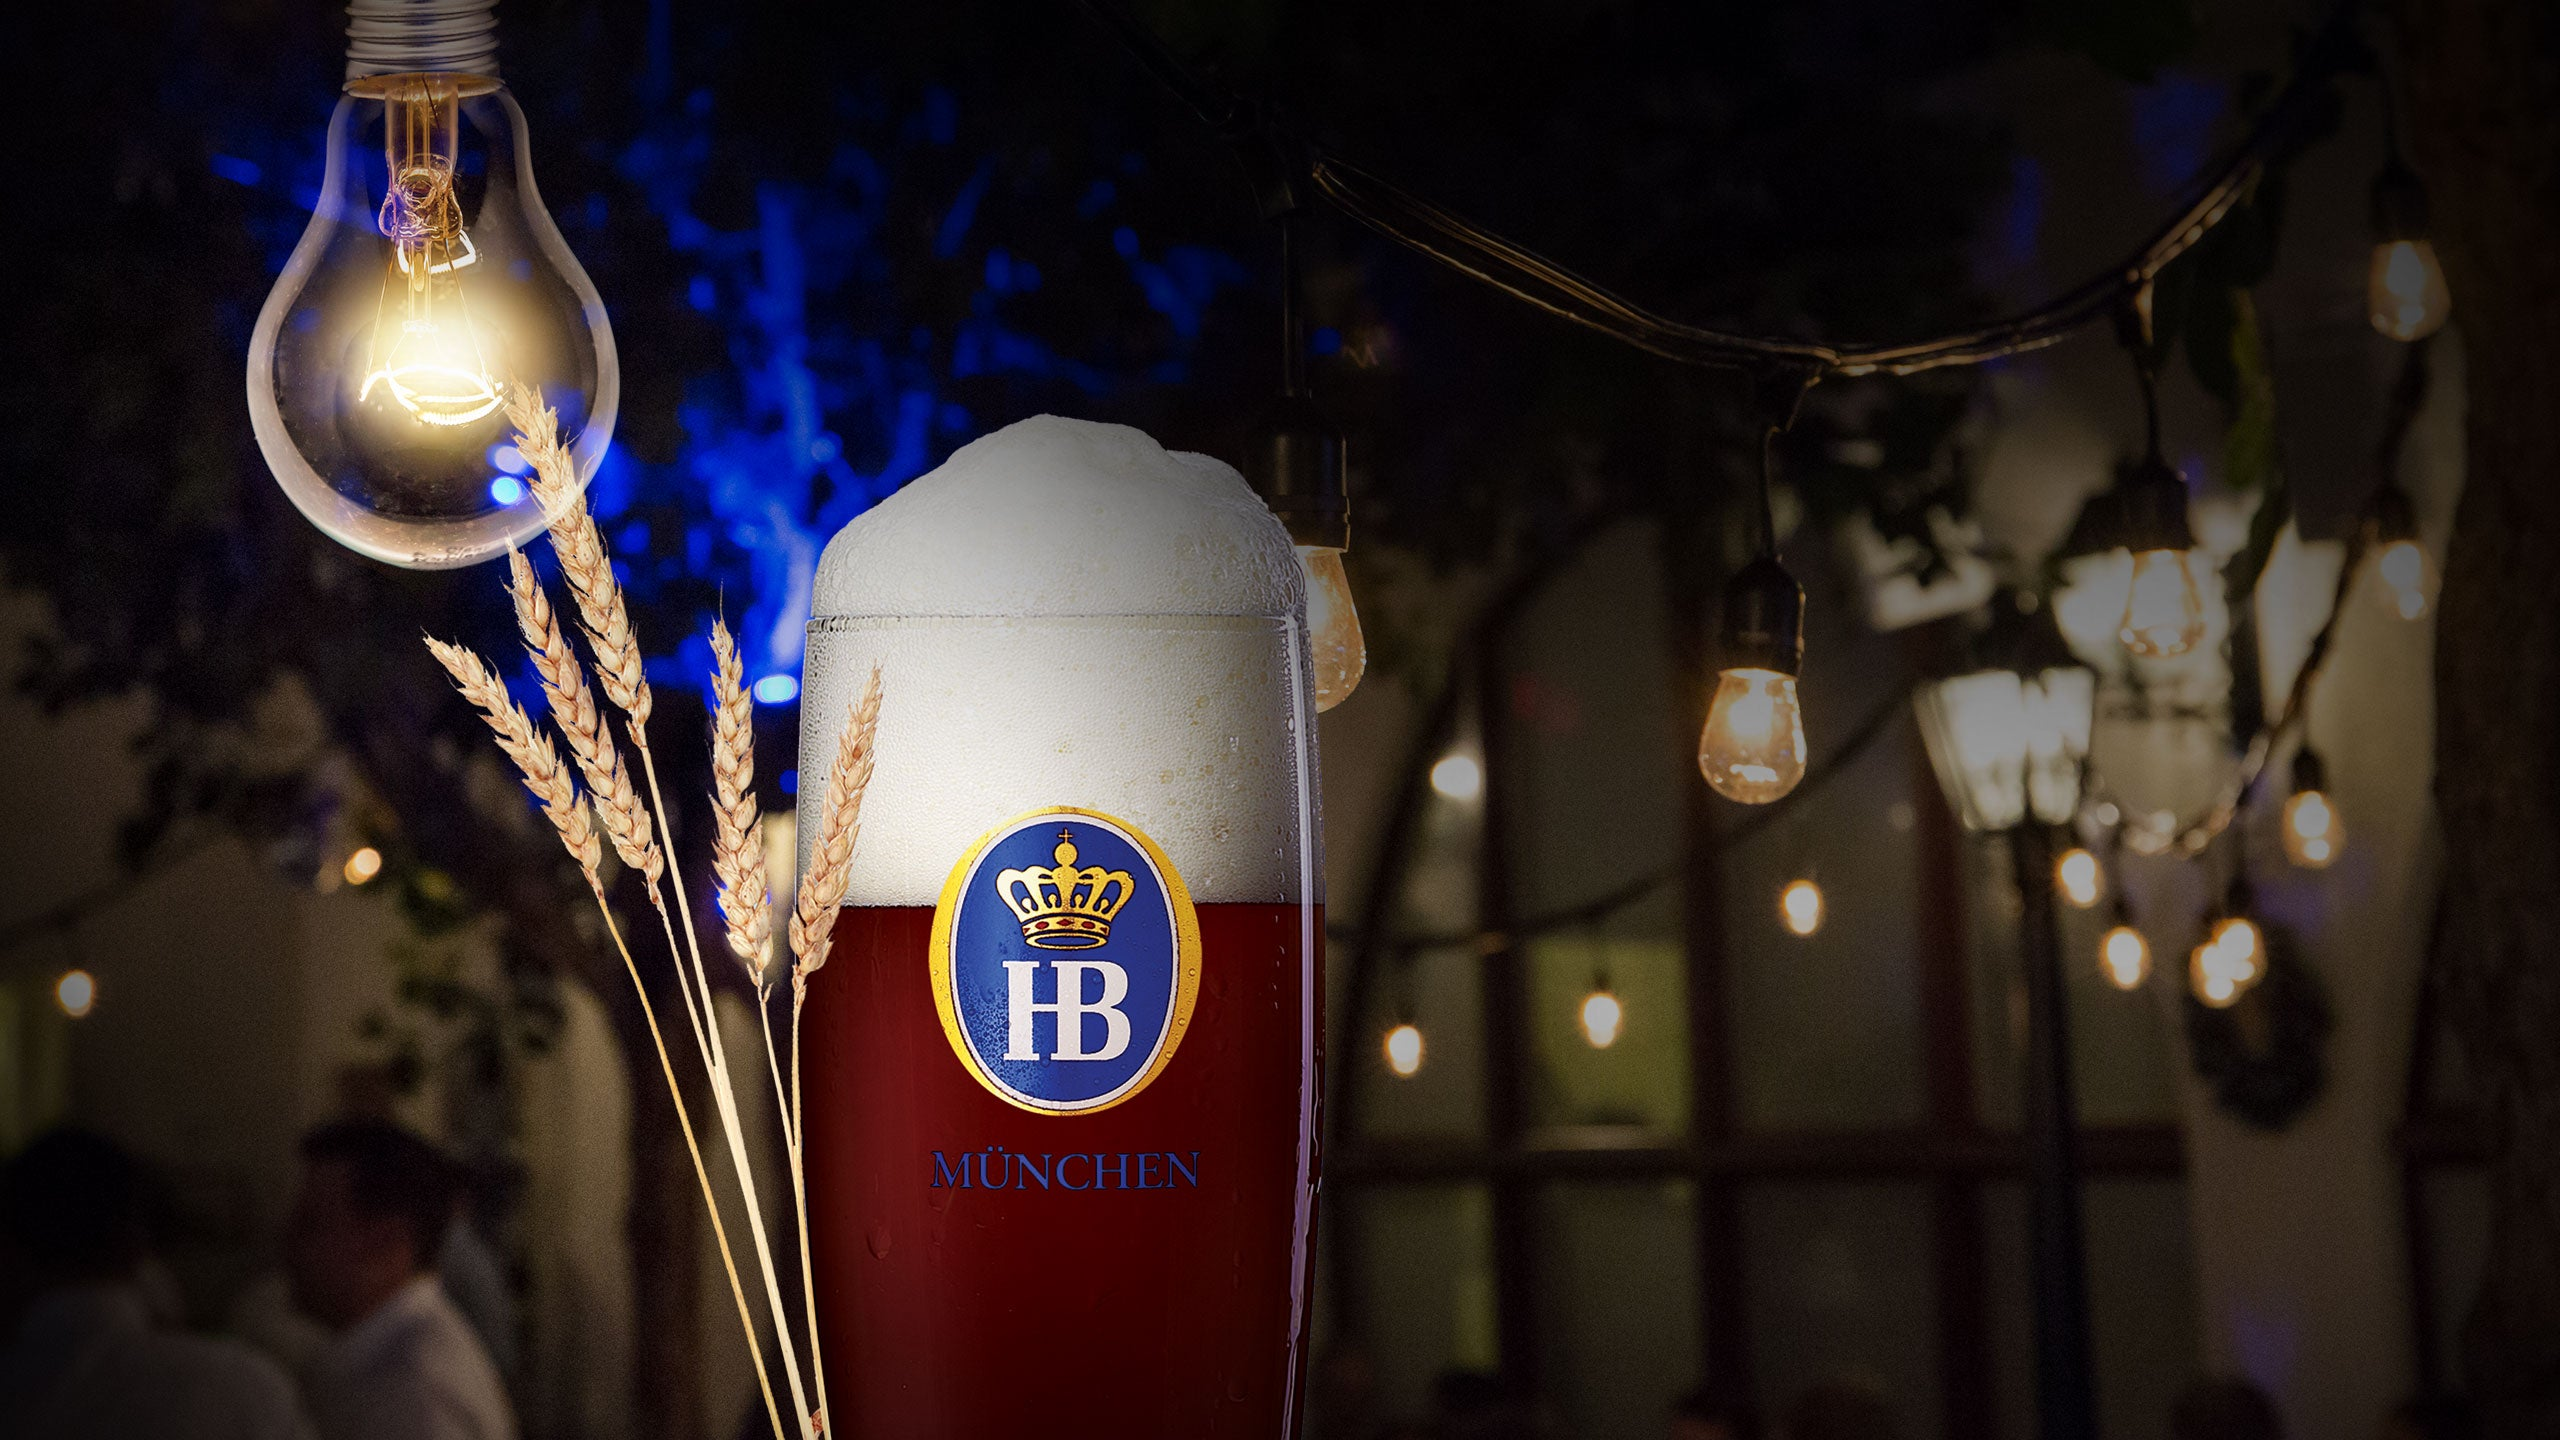 Famous Dark Wheat beer is now available at Hofbrauhaus Las Vegas,. Get a stein while it lasts!